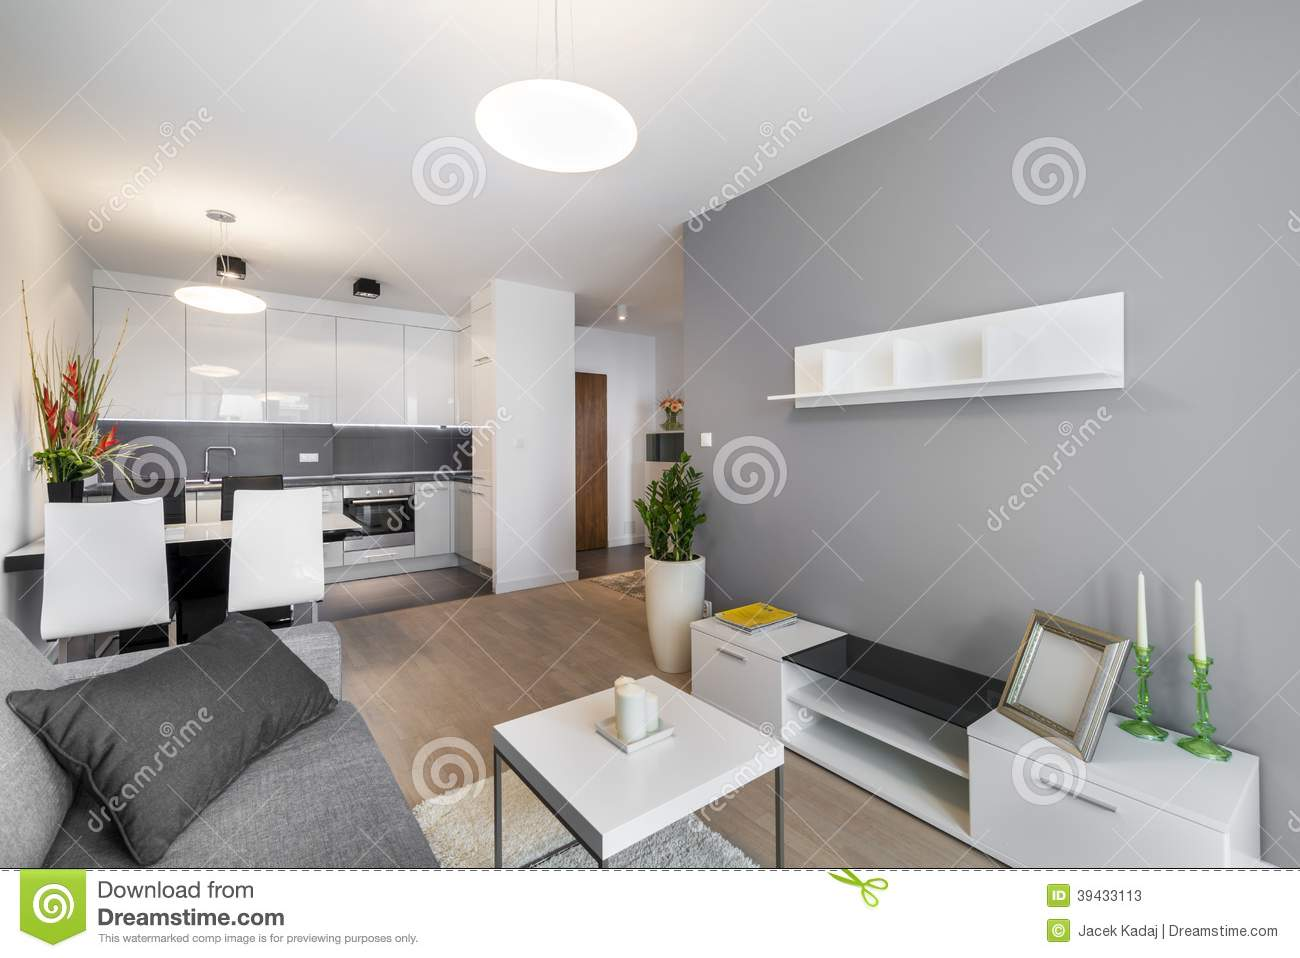 Modern interior design living room stock photo image 39433113 - Kitchen in living room design ...